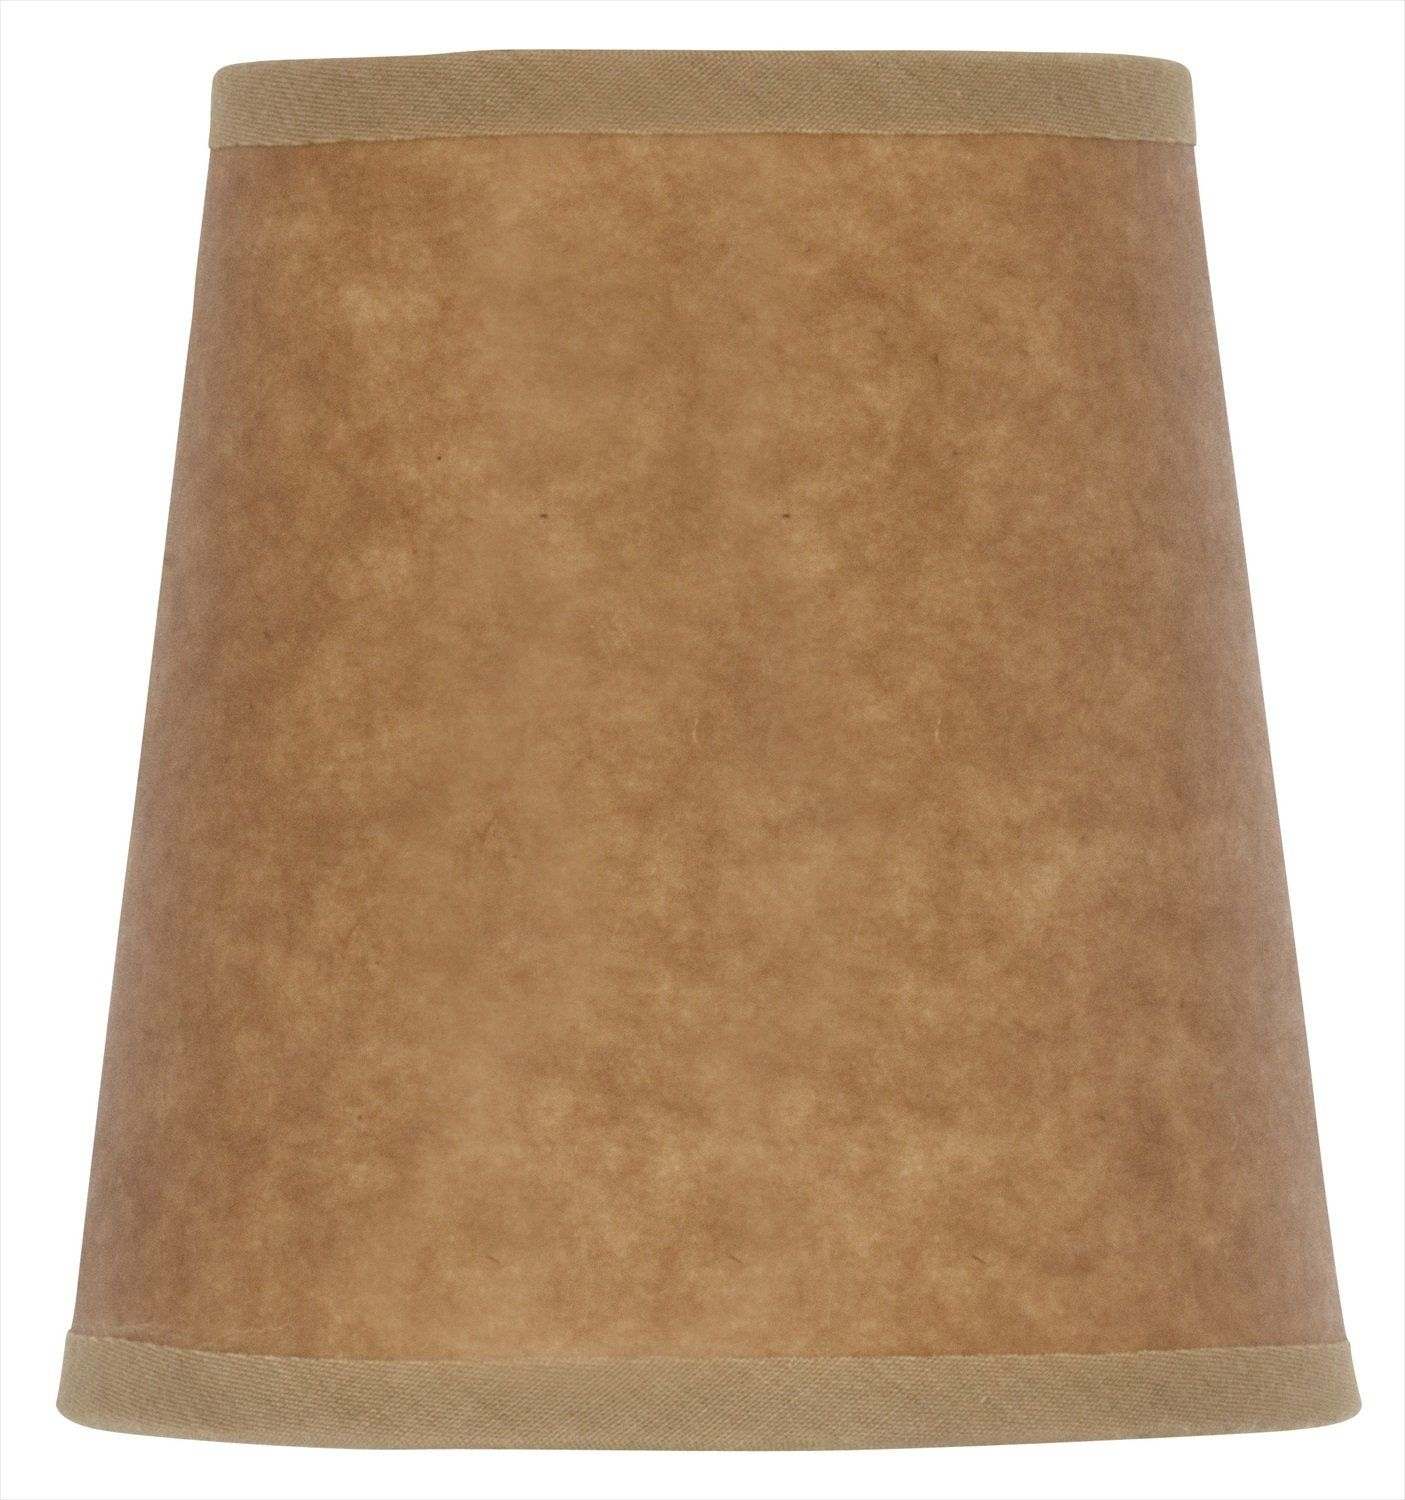 Mini lamp shades - Mini Chandelier Shade Clip On Small Lamp Shade Oiled Craft Paper Upgradelights Flame Clip Chandelier